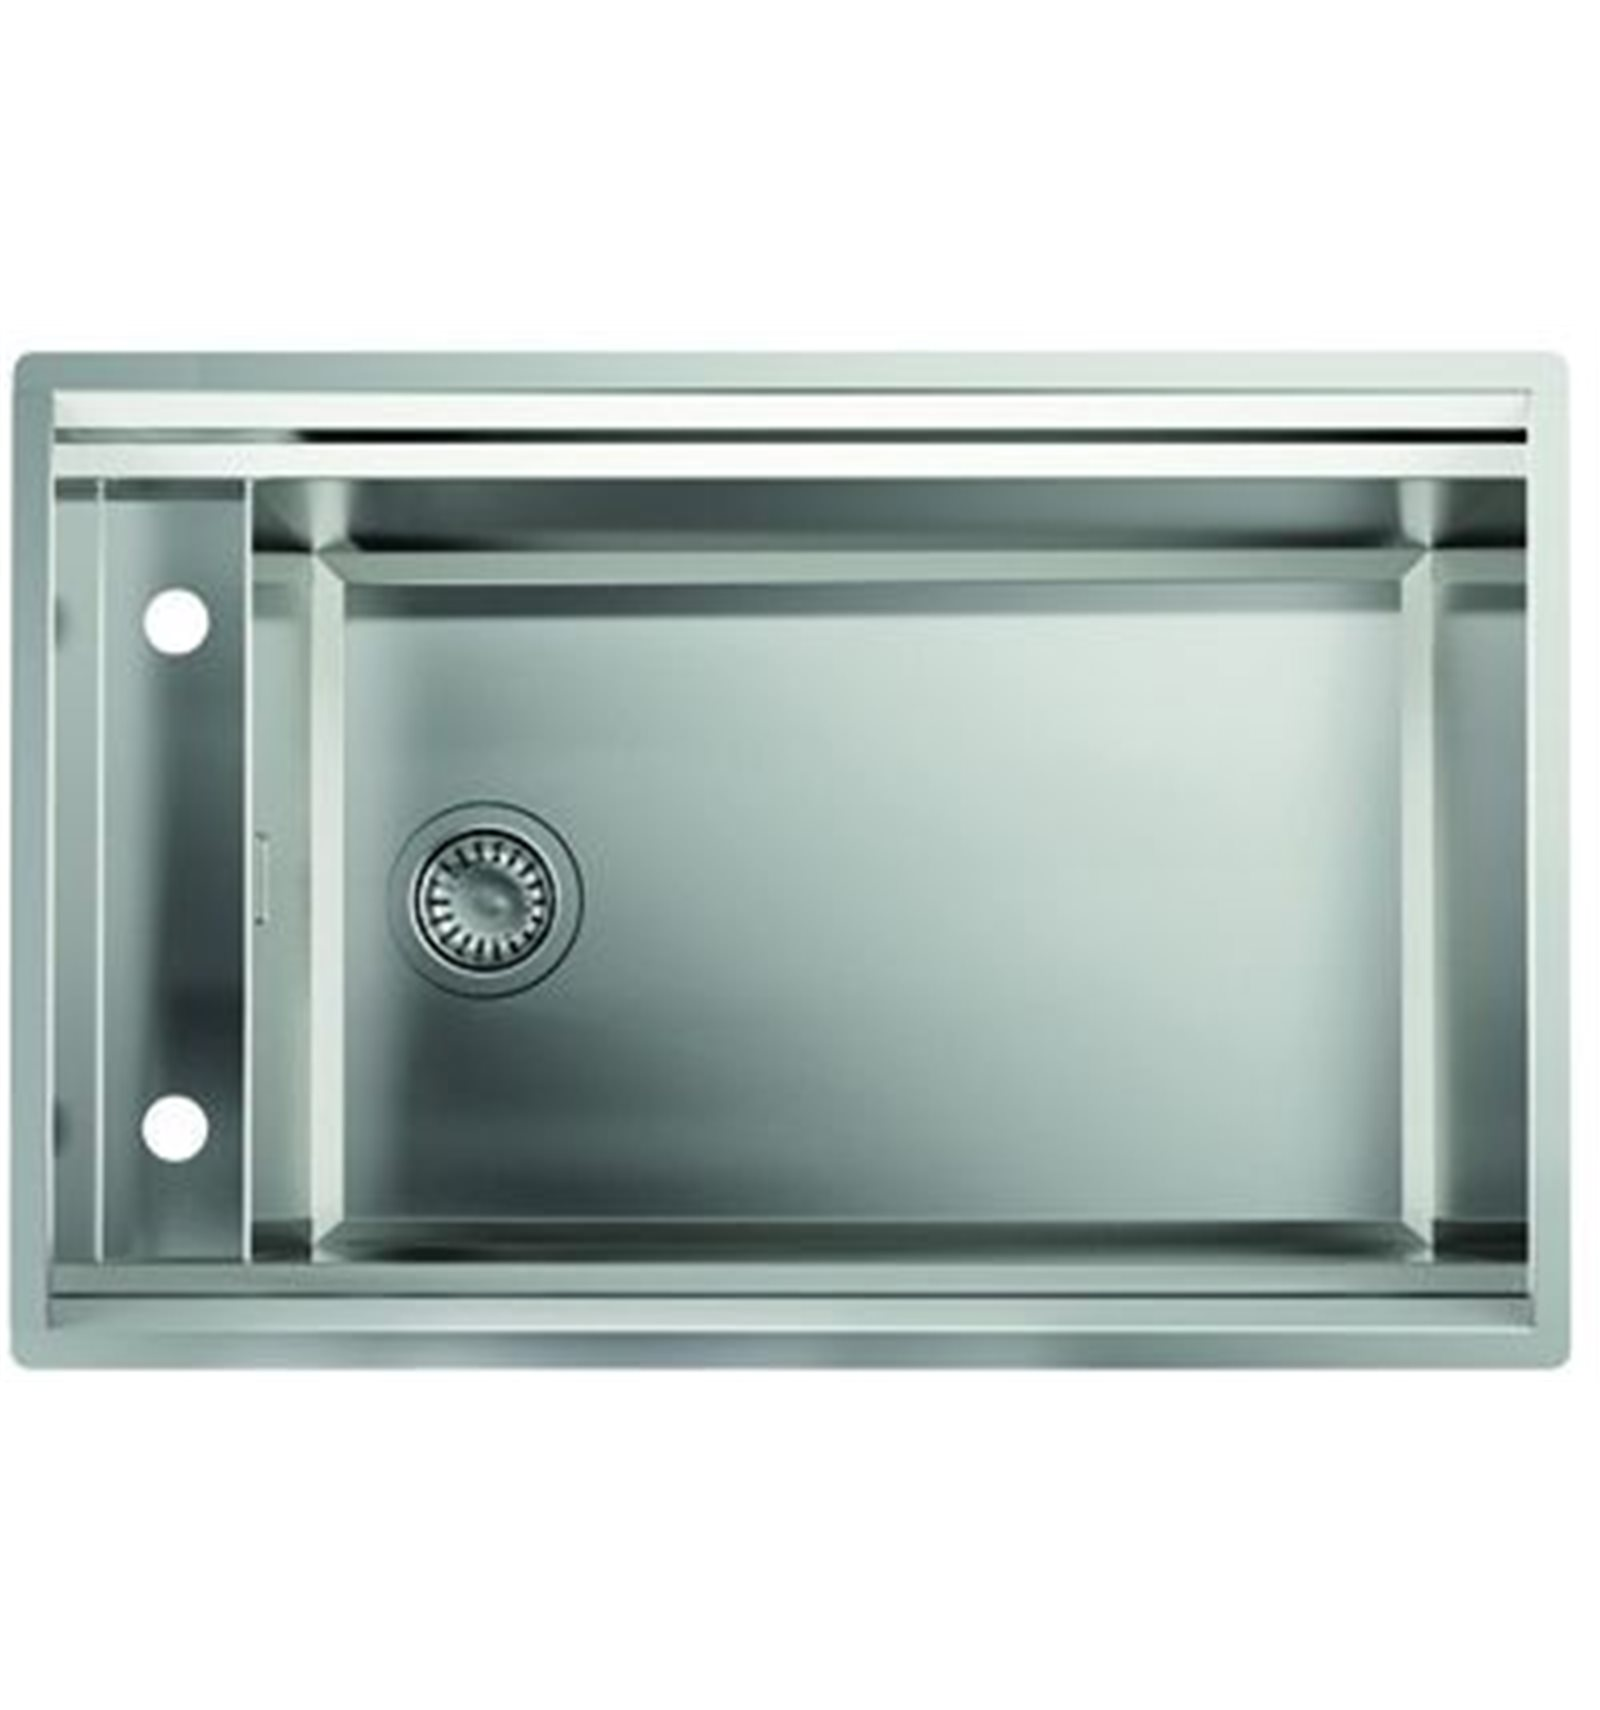 Artinox Layer Brl 74 Stainless Steel Kitchen Sink